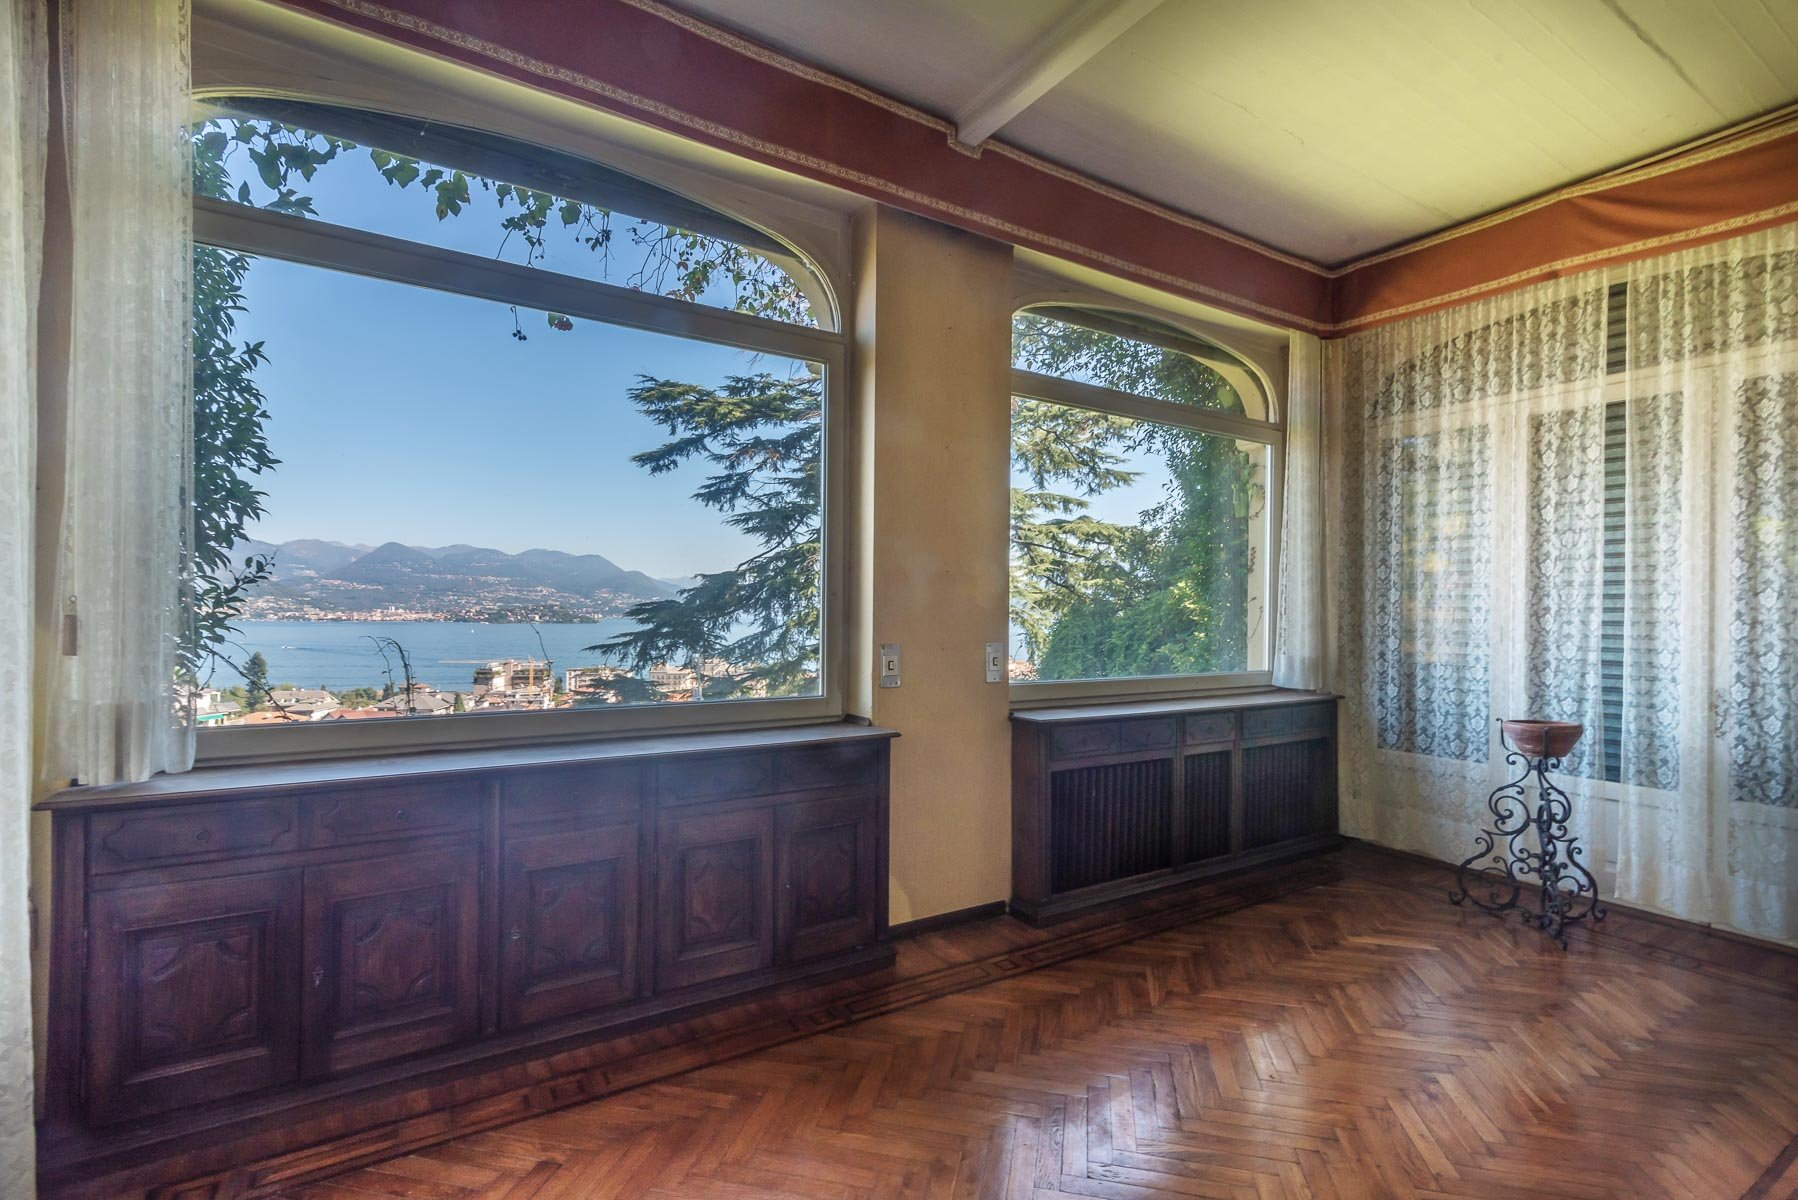 Liberty villa for sale in Stresa - lake view room